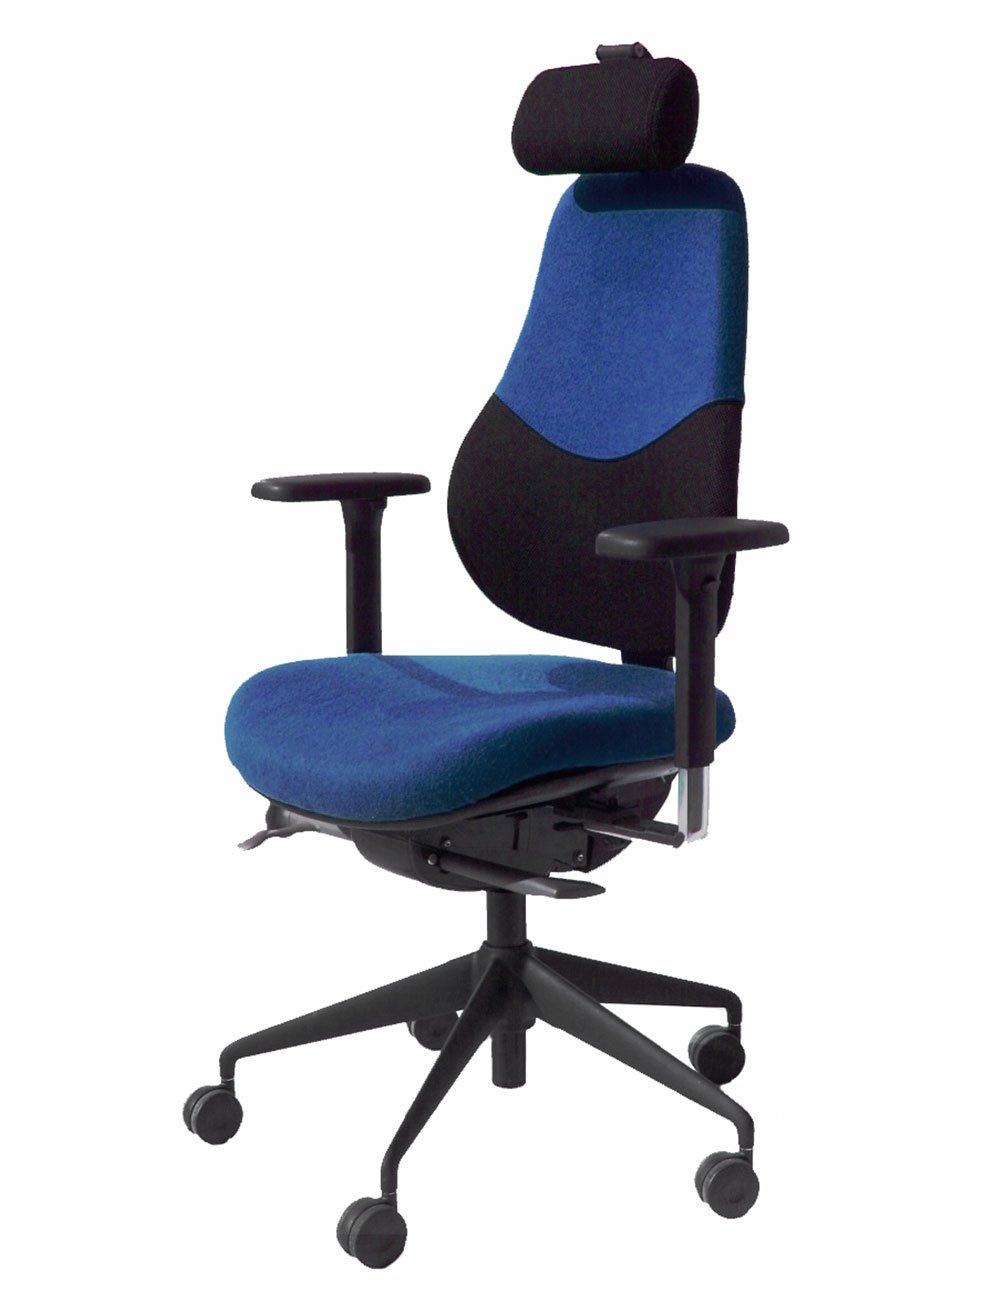 Active Ergonomics Flo Chair